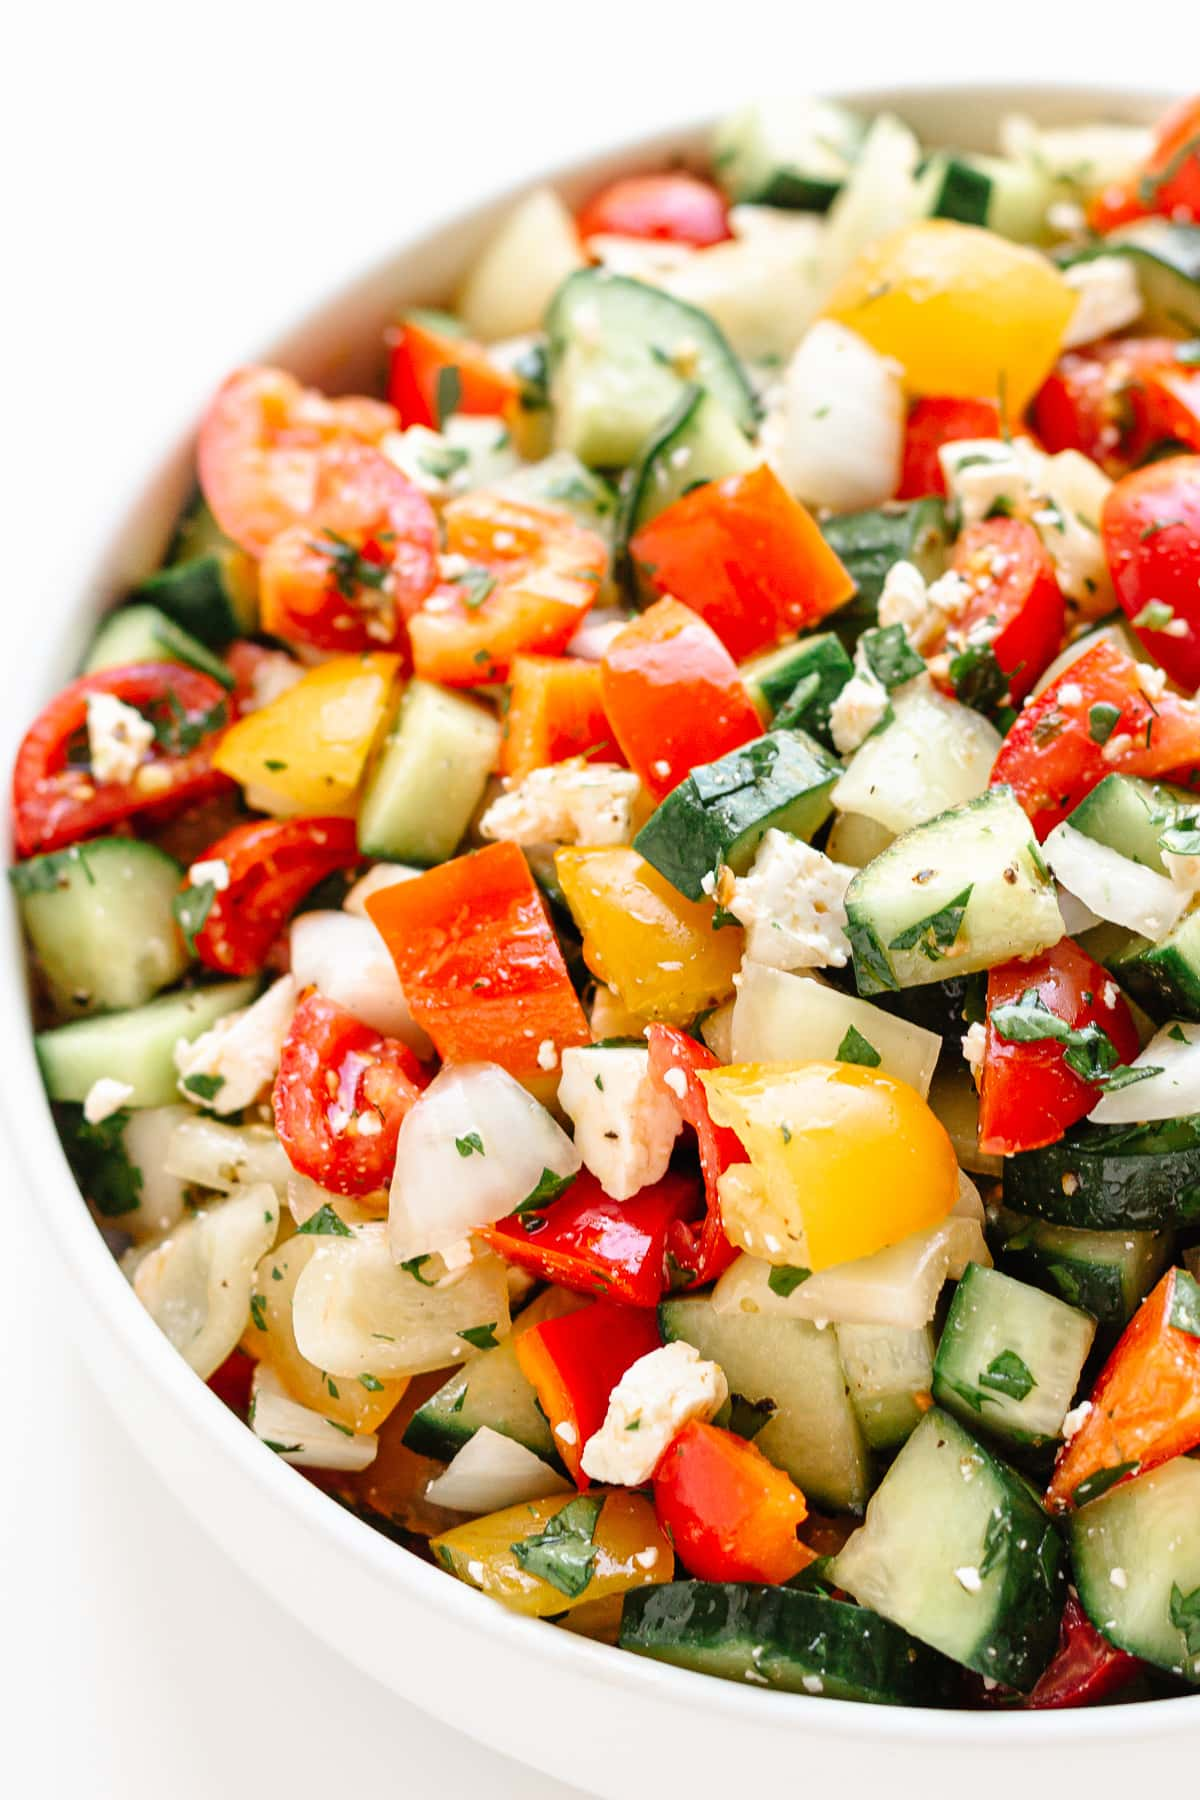 Bowl of Mediterranean style chopped salad on a white background.